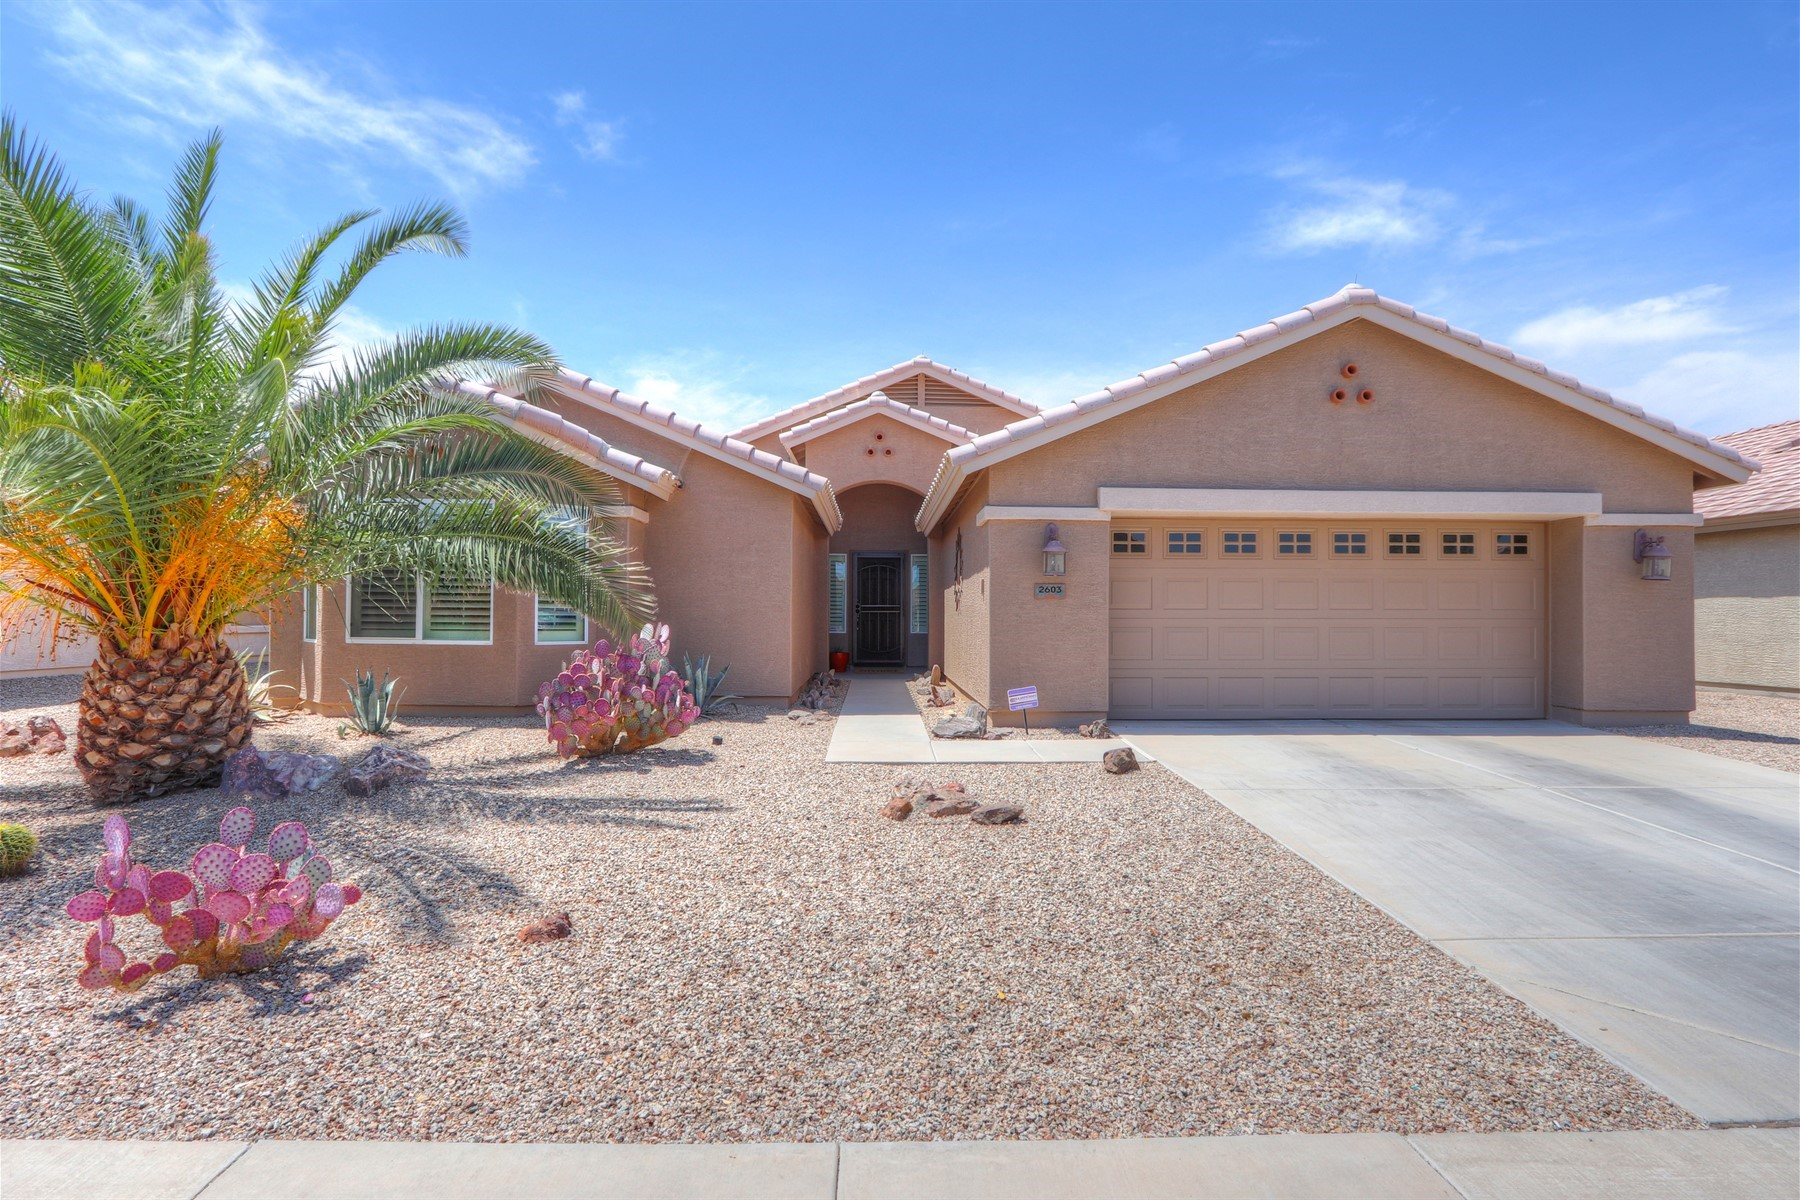 Single Family Homes for Active at Mission Royale 2603 E SANTA MARIA DR Casa Grande, Arizona 85194 United States